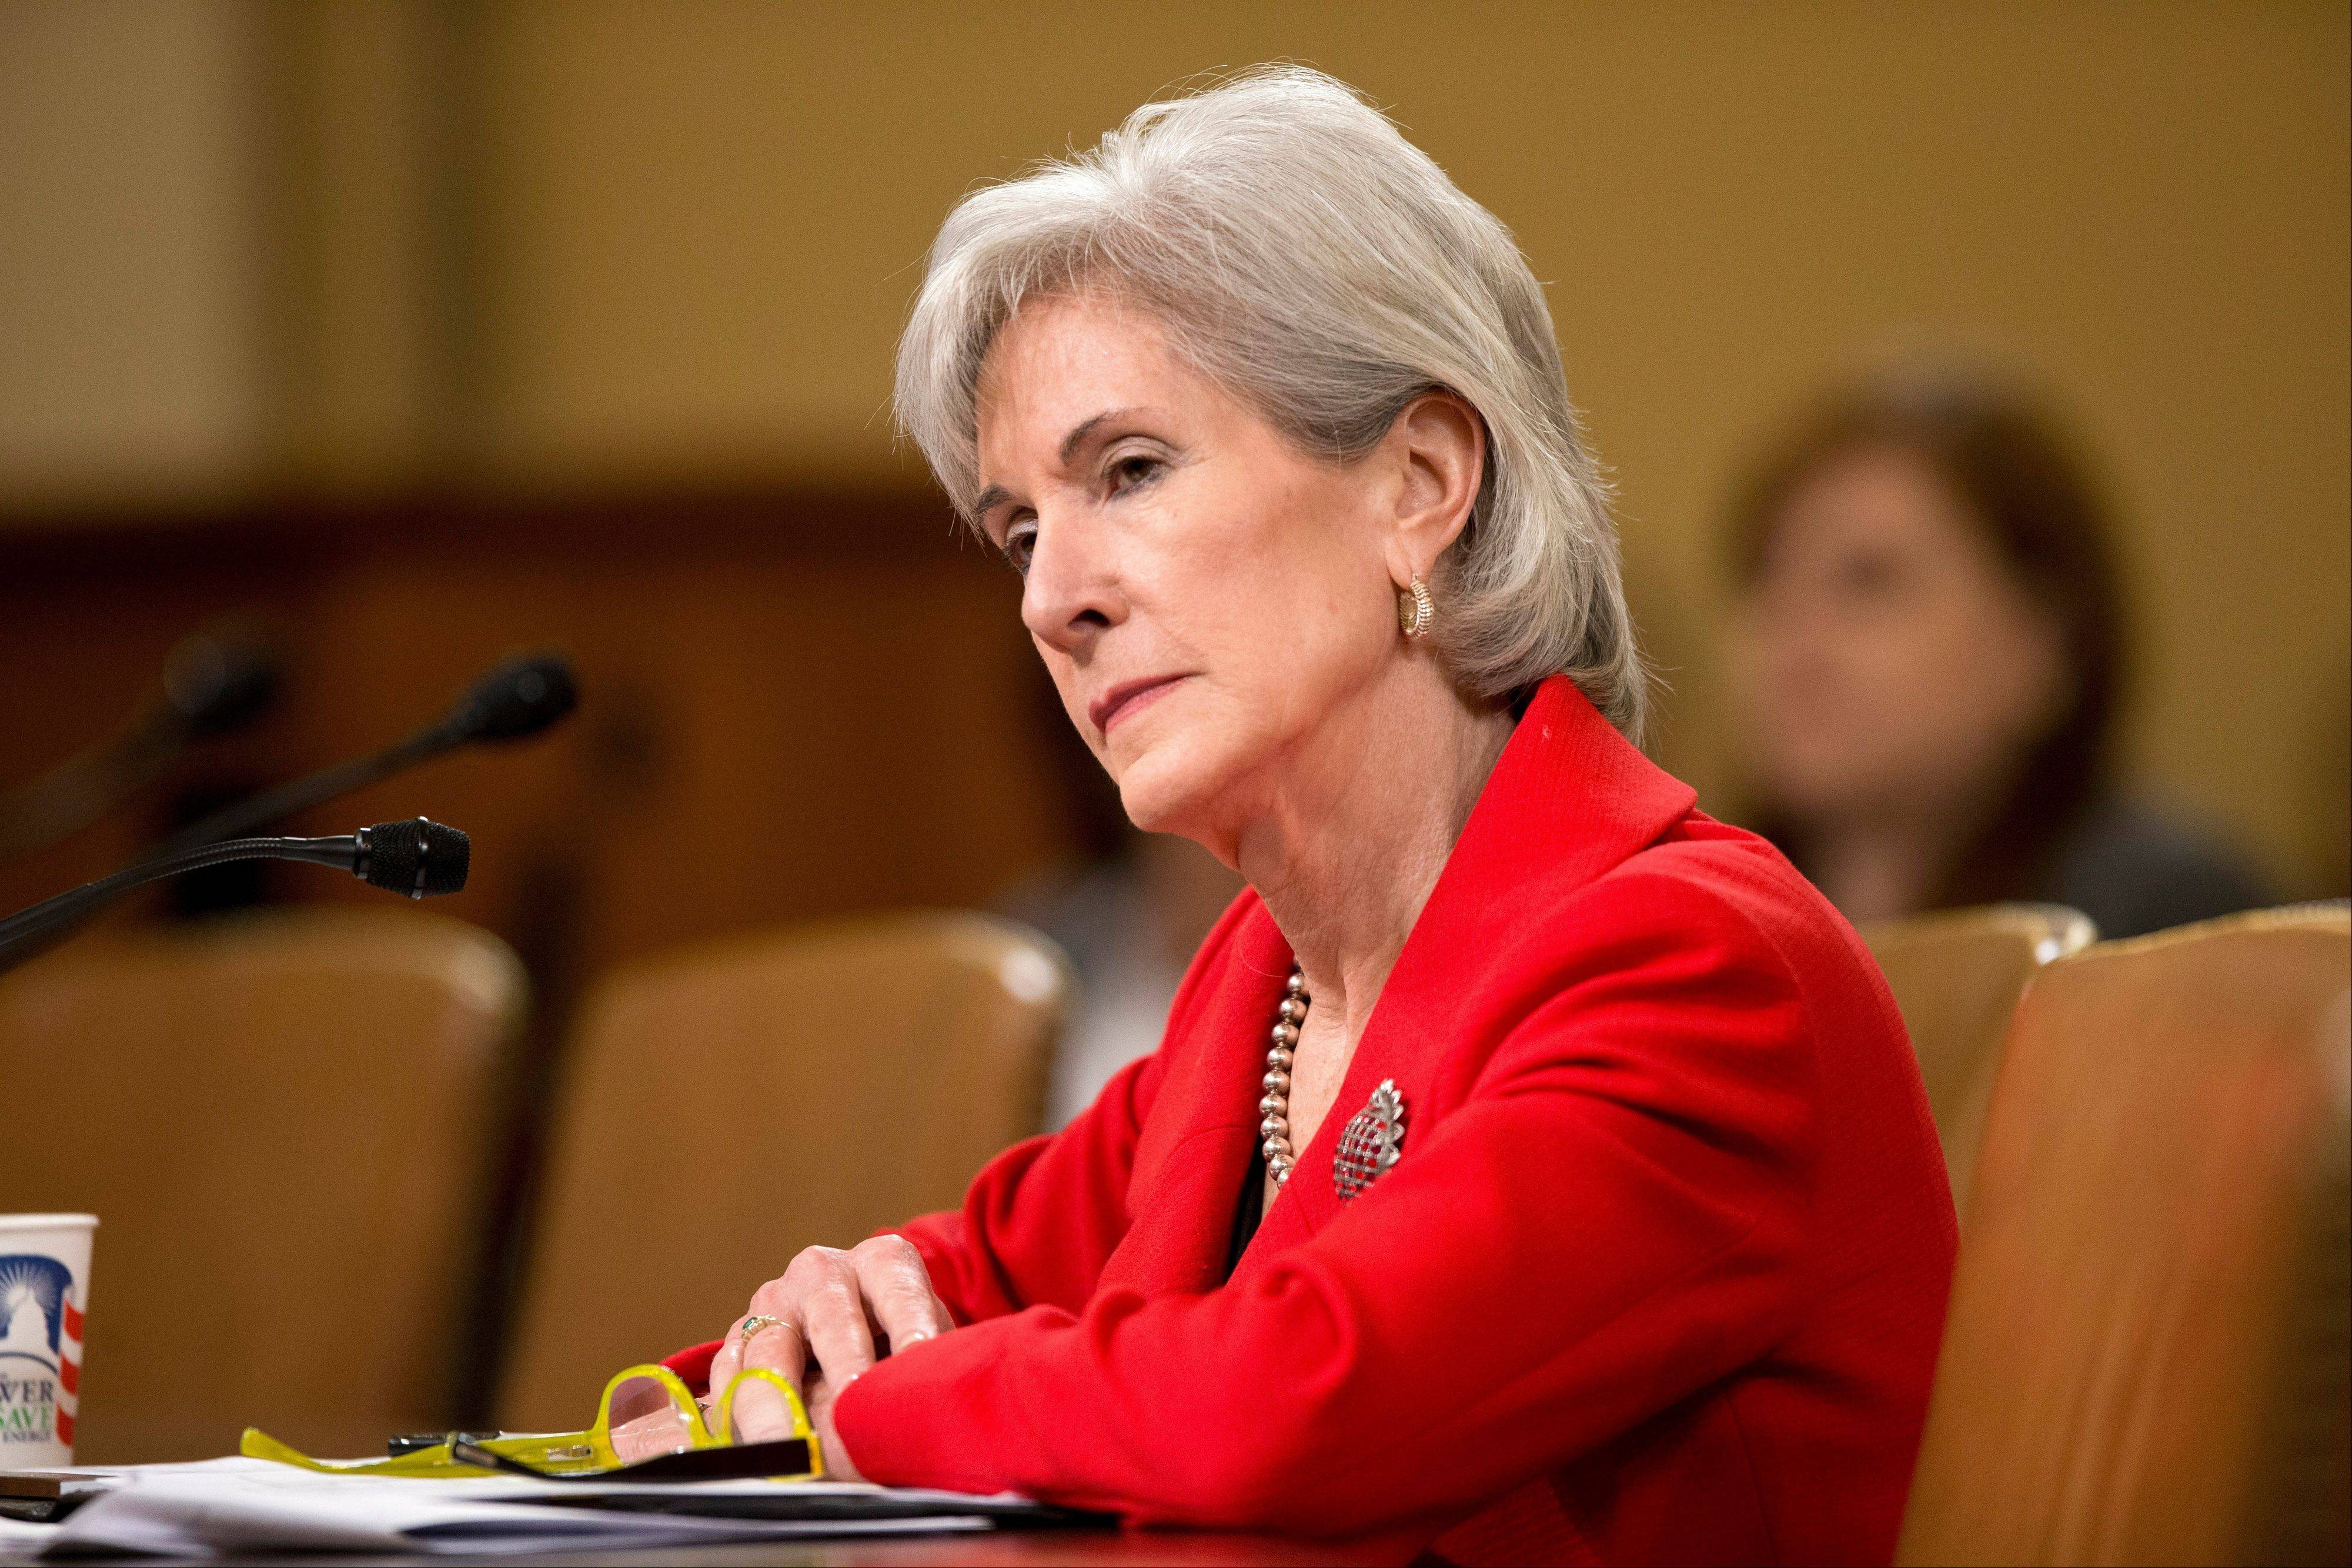 In this April 12, 2103 file photo, Health and Human Services (HHS) Secretary Kathleen Sebelius testifies on Capitol Hill in Washington. Just eight weeks remain before uninsured Americans can start shopping online for subsidized health insurance under the president�s overhaul. Sebelius said Monday consumers can now go online to healthcare.gov and create personal accounts by establishing a username and password.